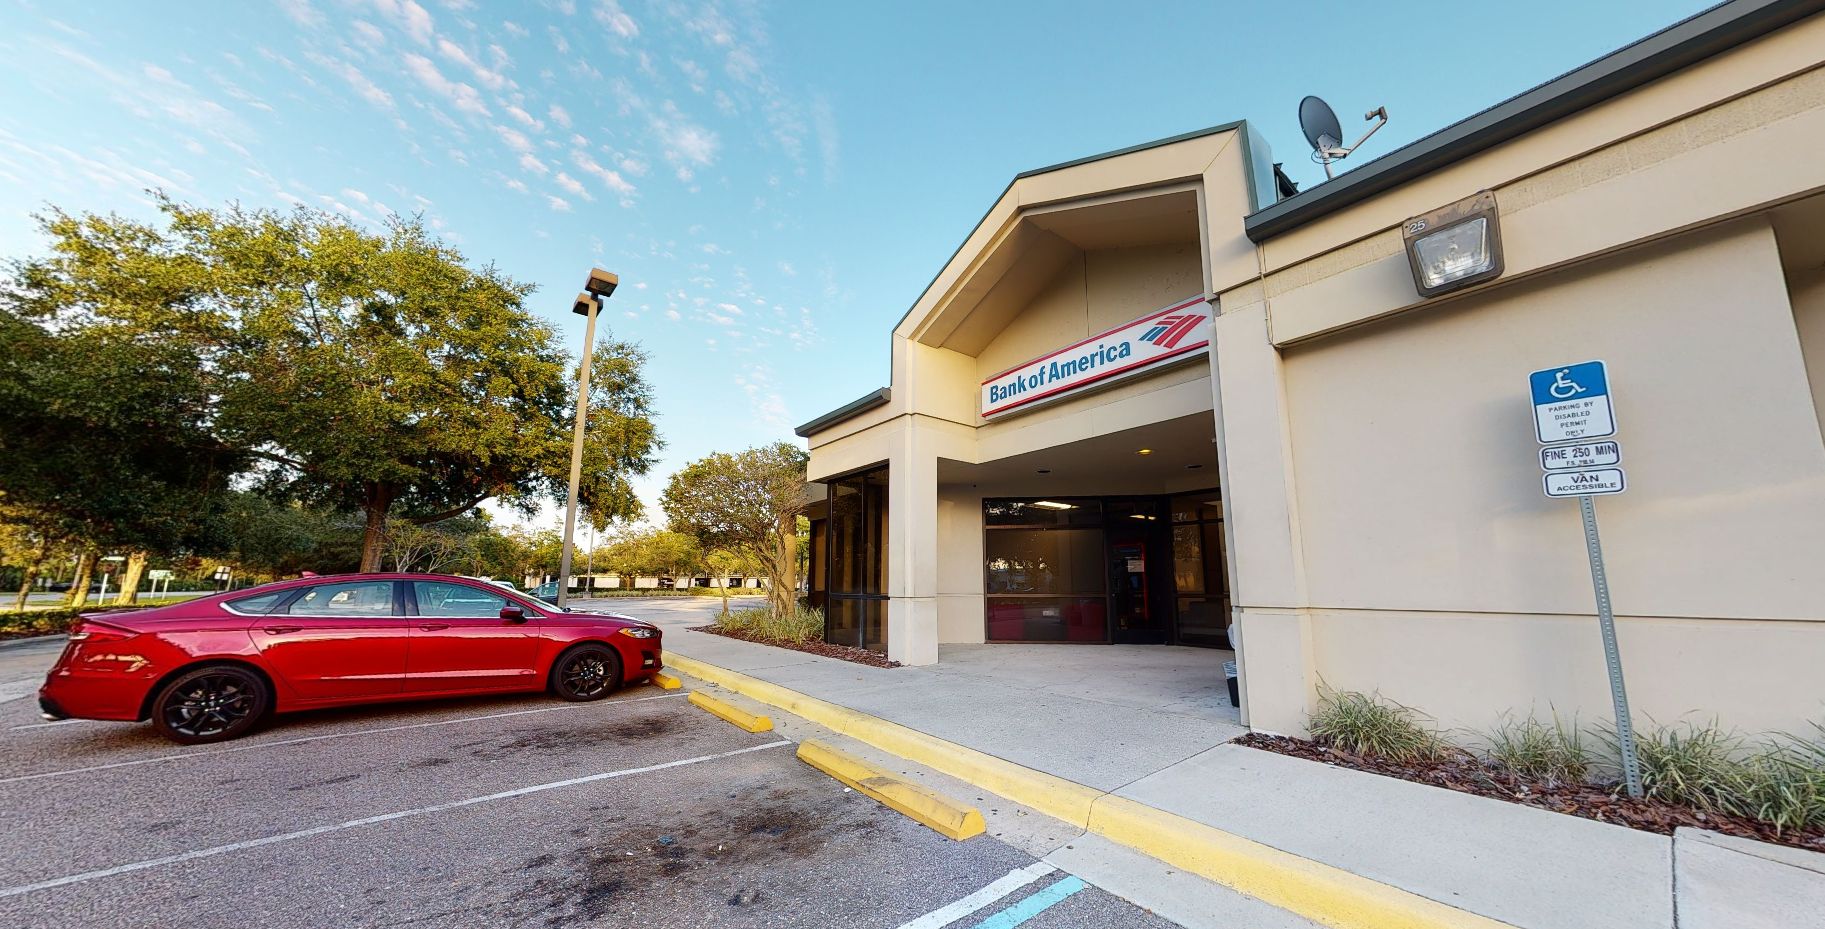 Bank of America financial center with drive-thru ATM and teller   4850 Belle Terre Pkwy, Palm Coast, FL 32164